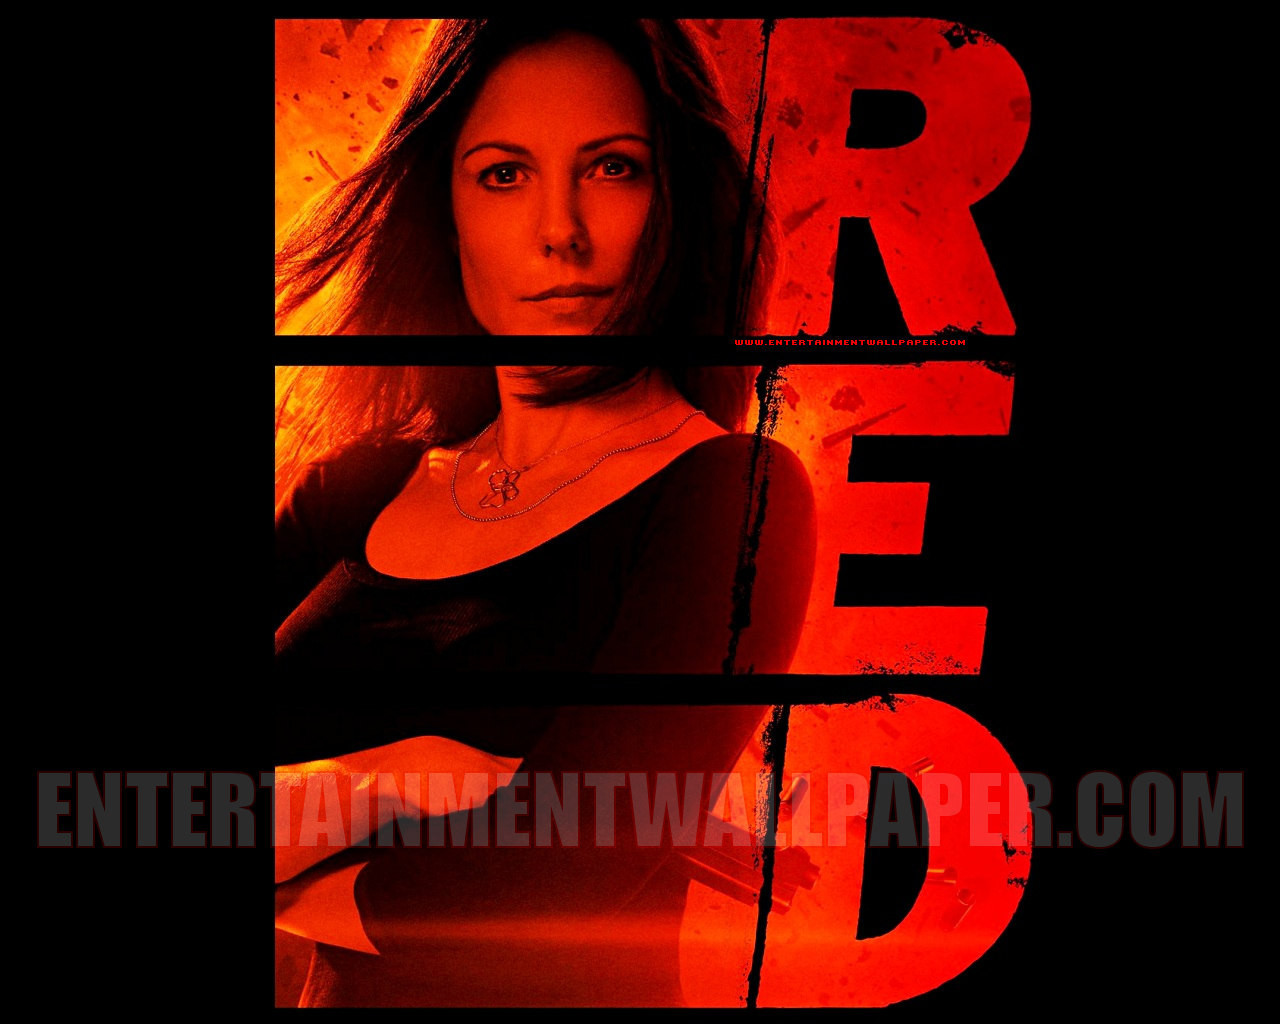 red 2010 upcoming movies wallpaper 15145693 fanpop